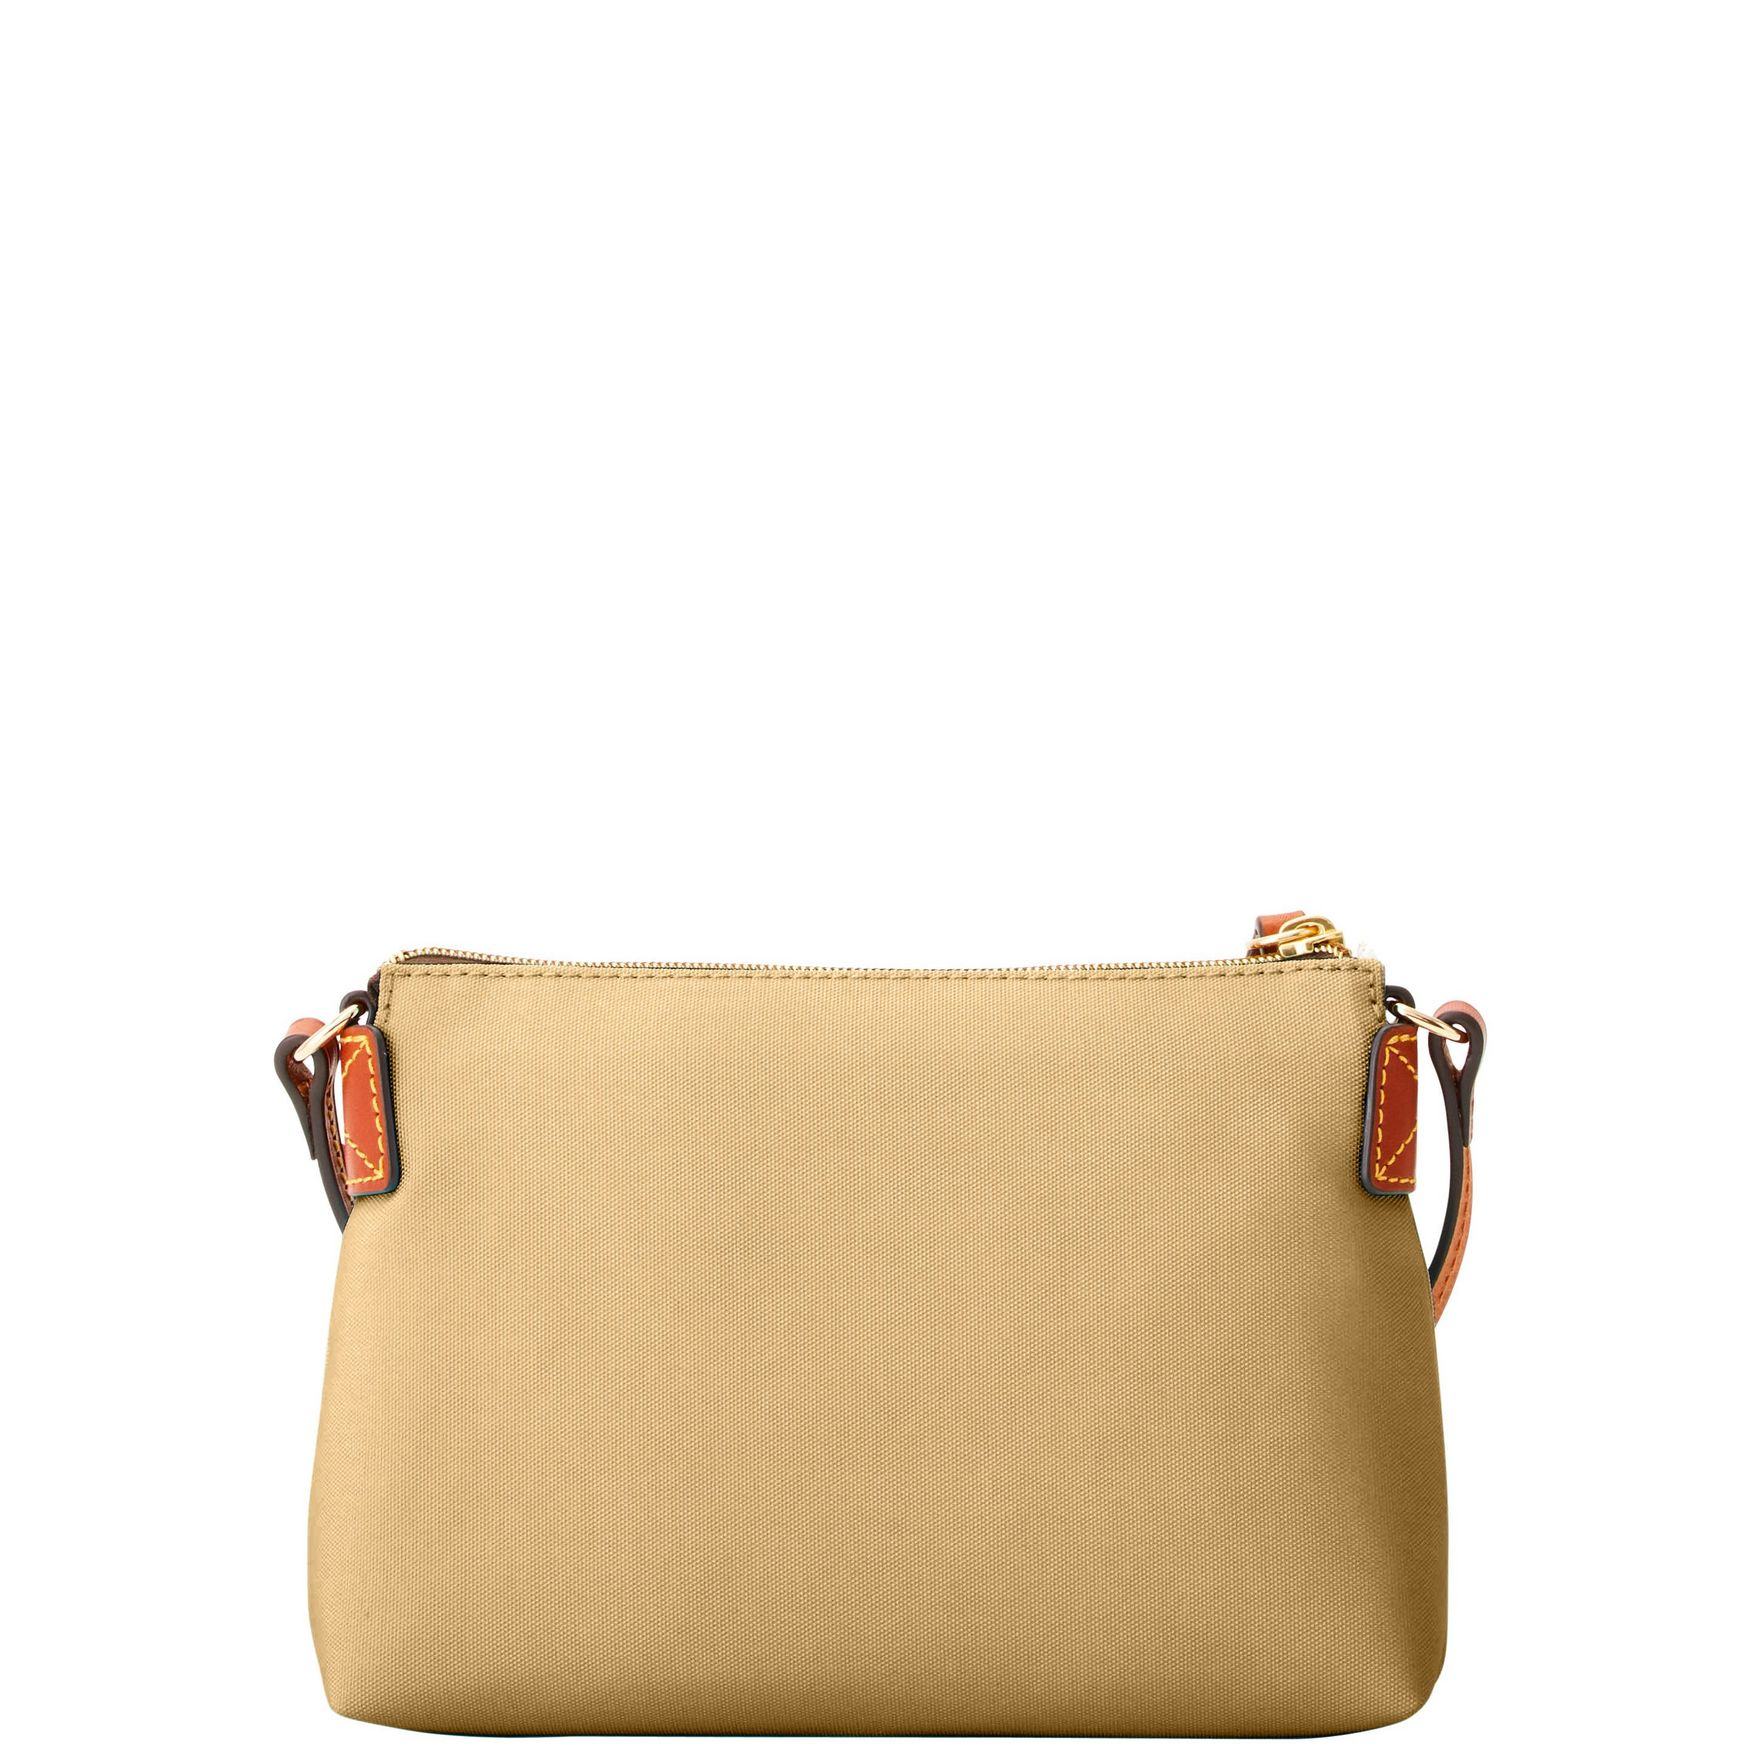 Dooney-amp-Bourke-Nylon-Crossbody-Pouchette-Shoulder-Bag thumbnail 35